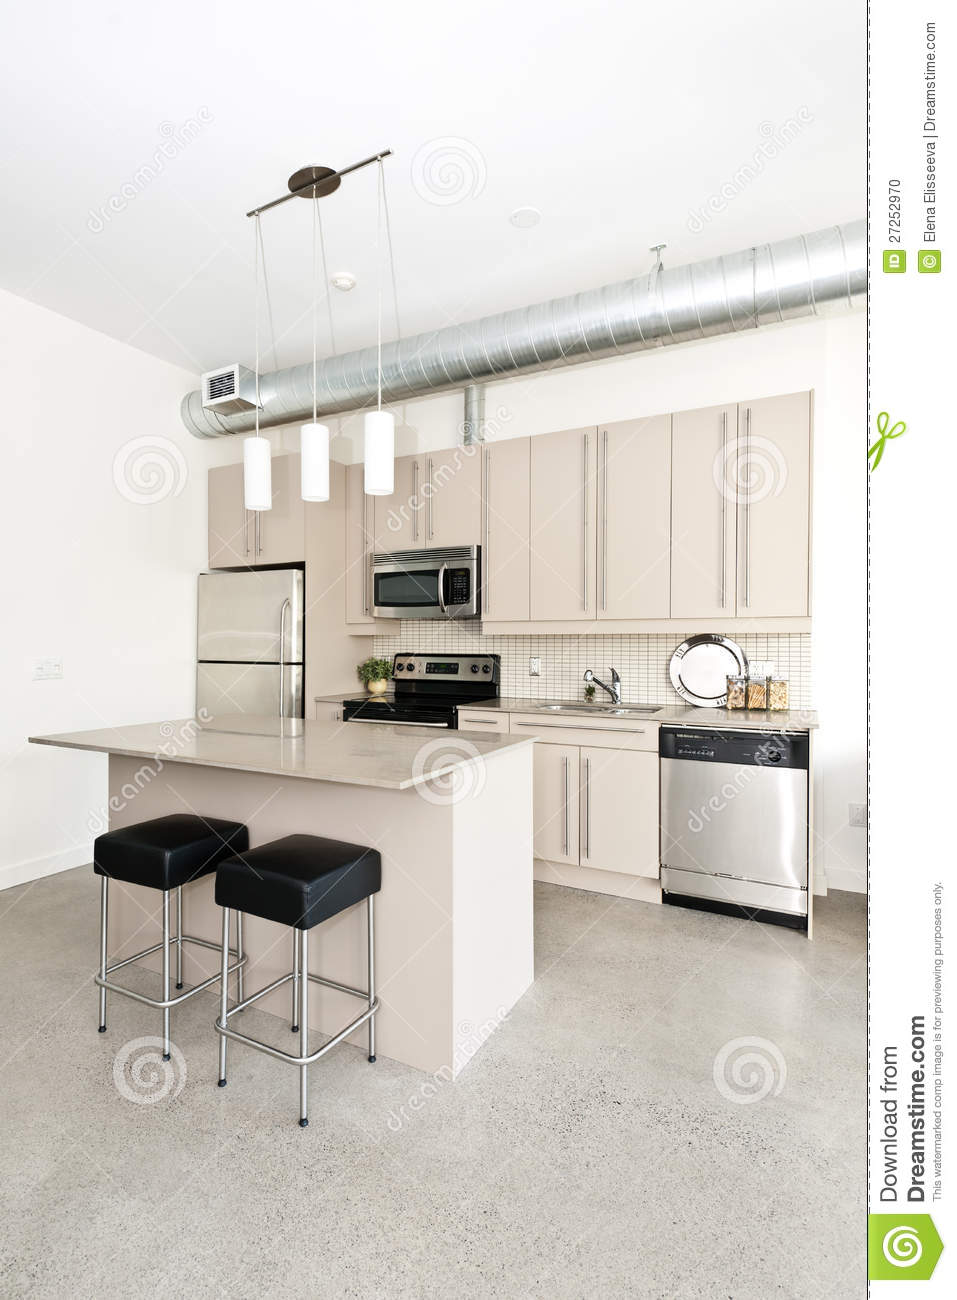 Modern Condo Kitchen Stock Photo. Image Of Condo